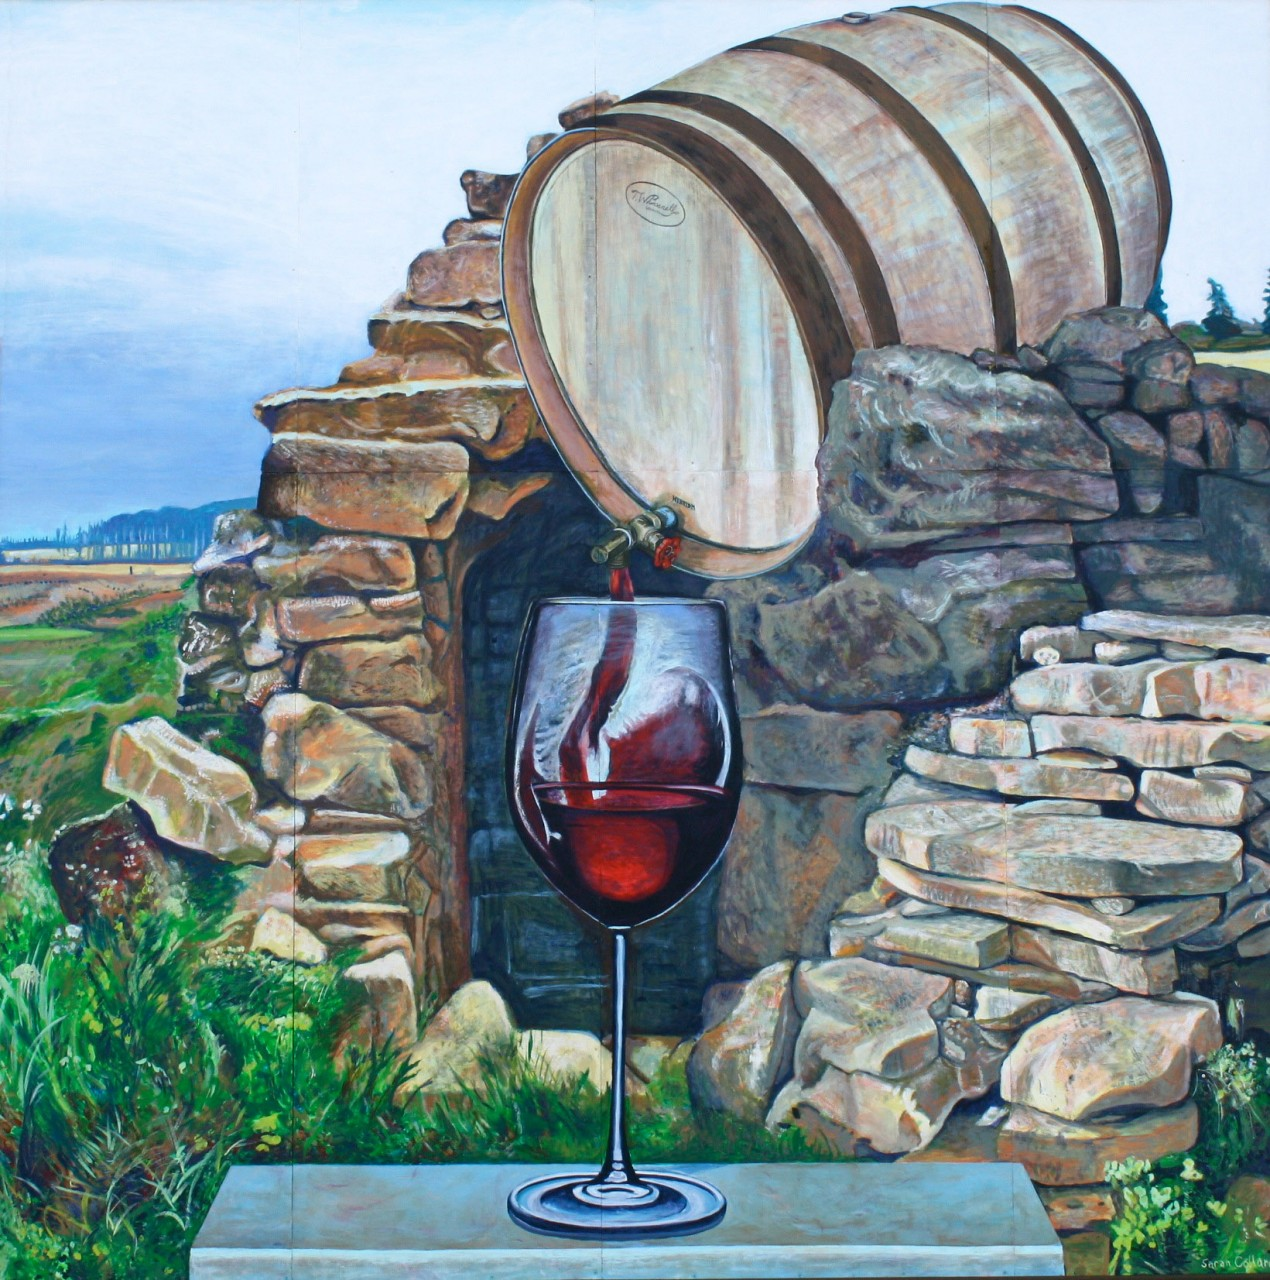 Winery; Barrel and Vineyard